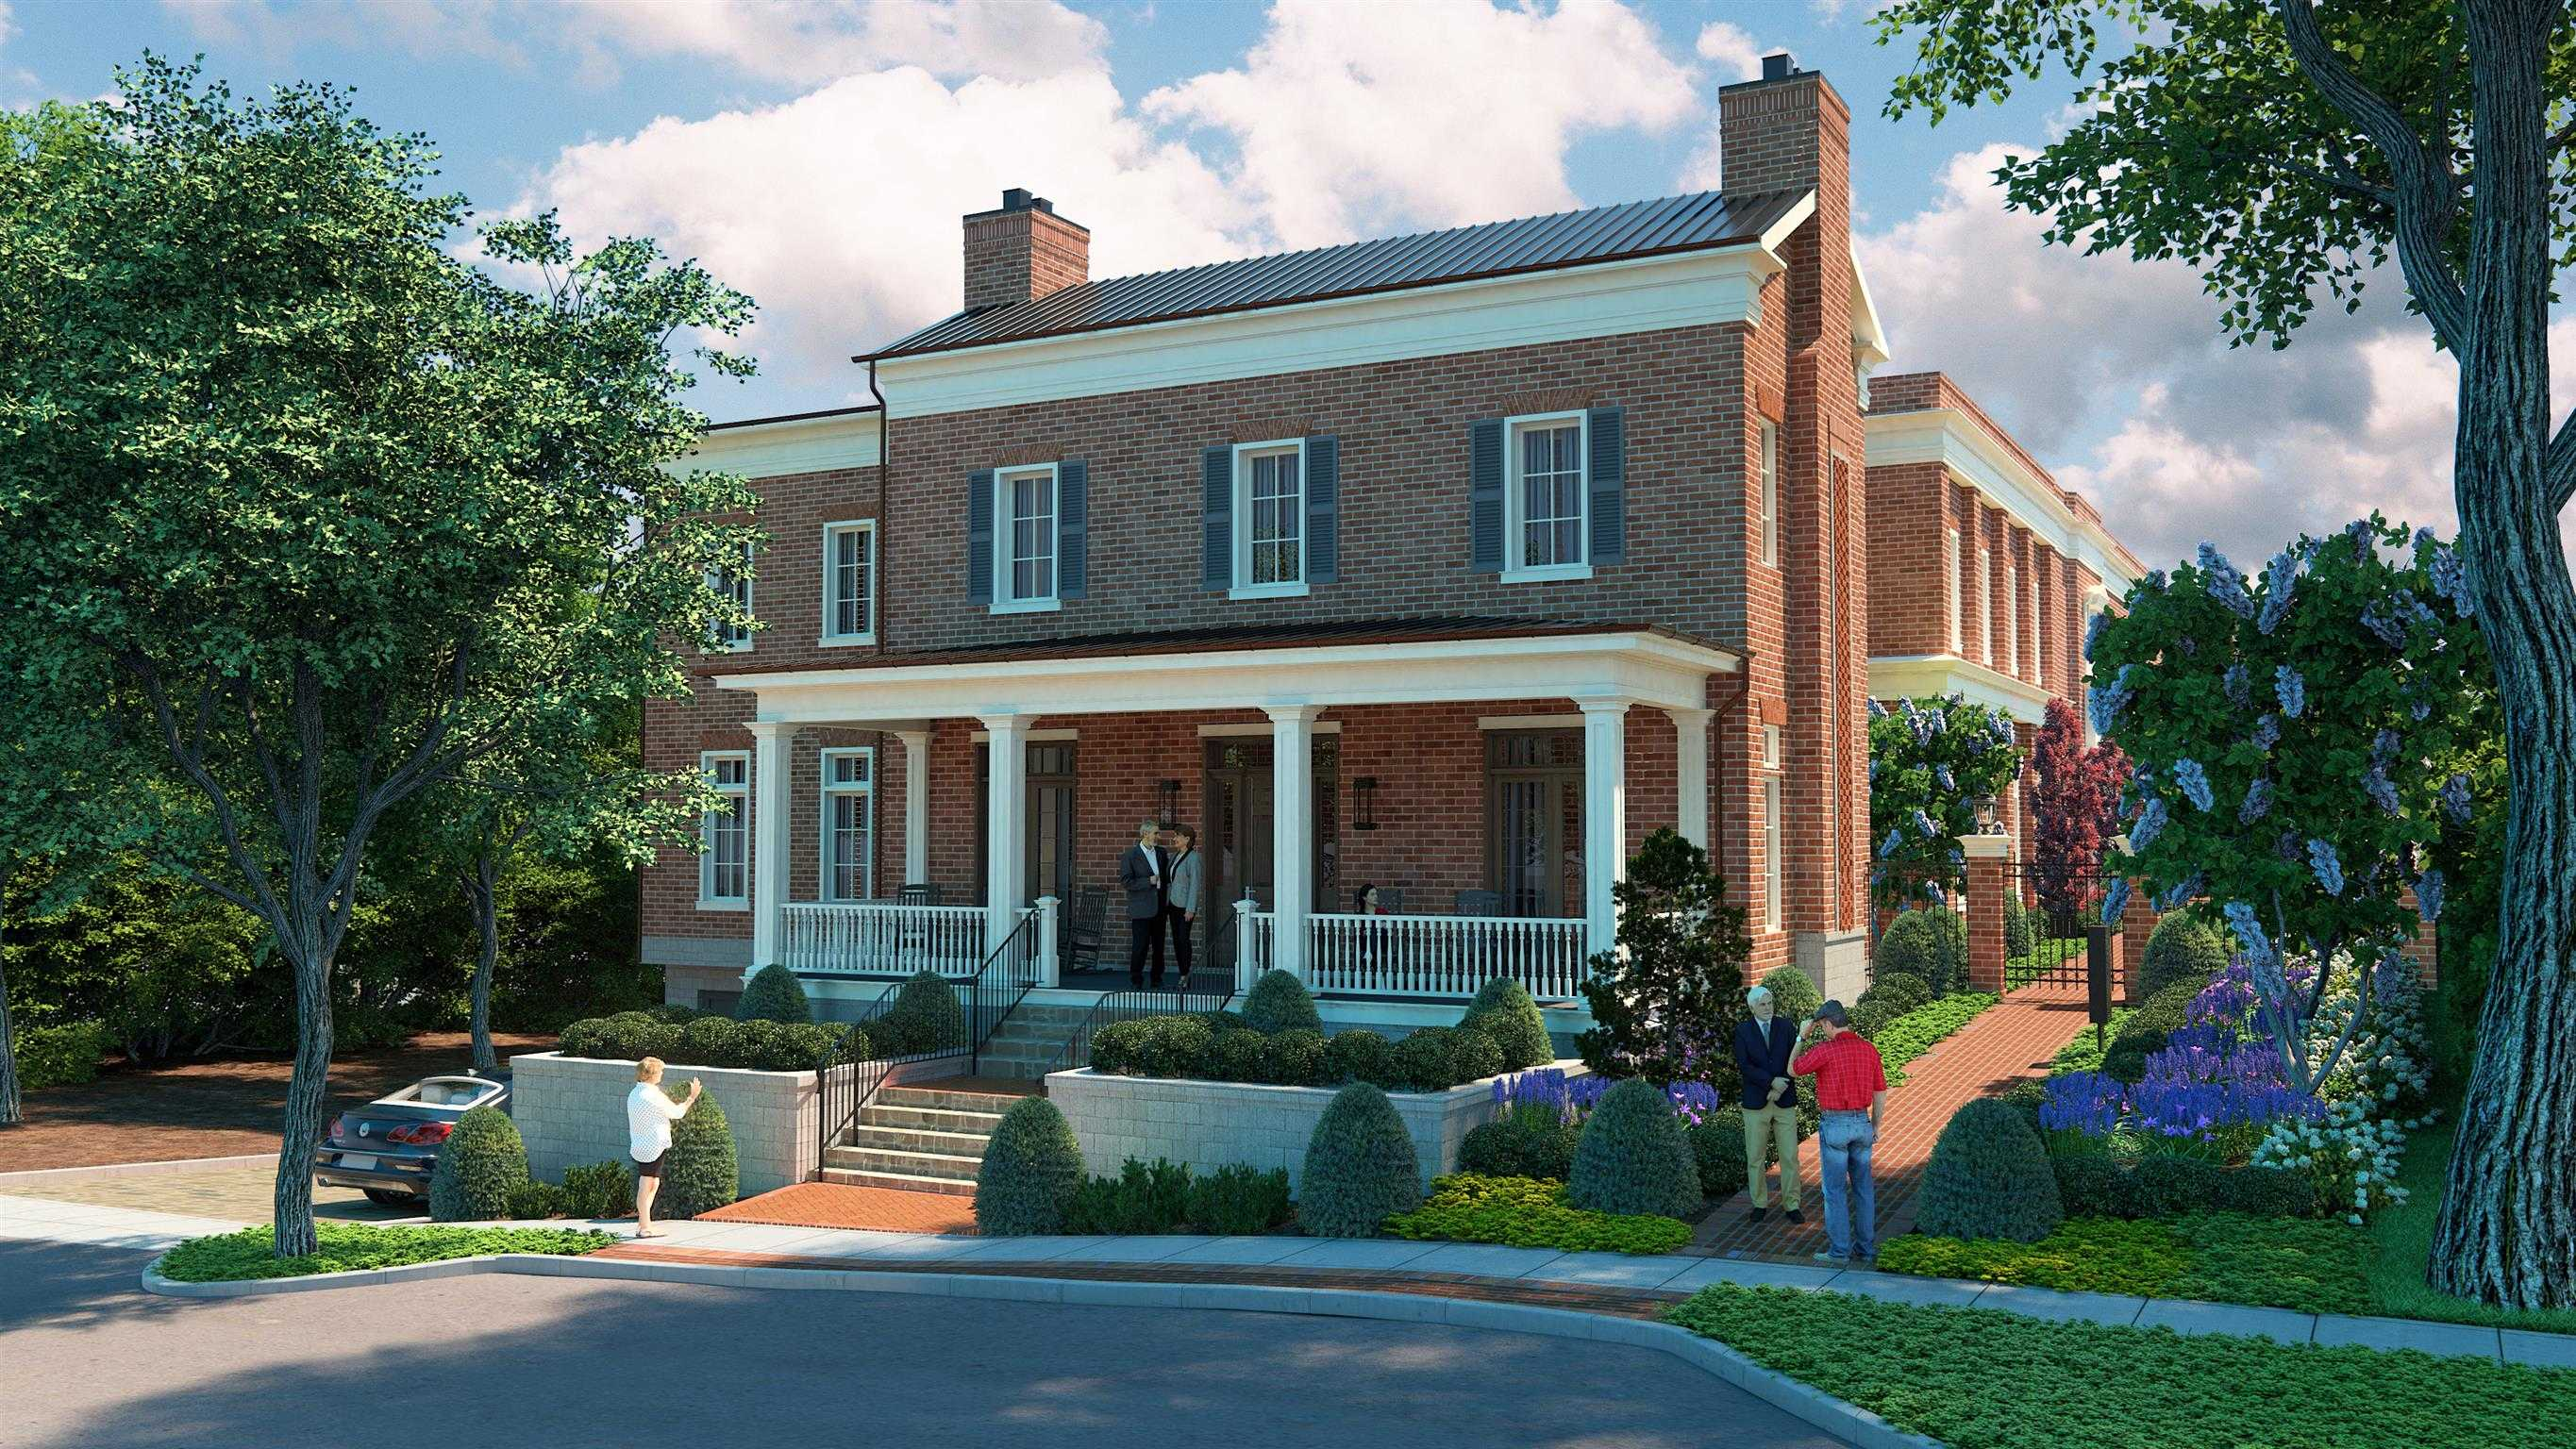 $2,828,250 - 3Br/2Ba -  for Sale in The Arlington At West Main, Franklin